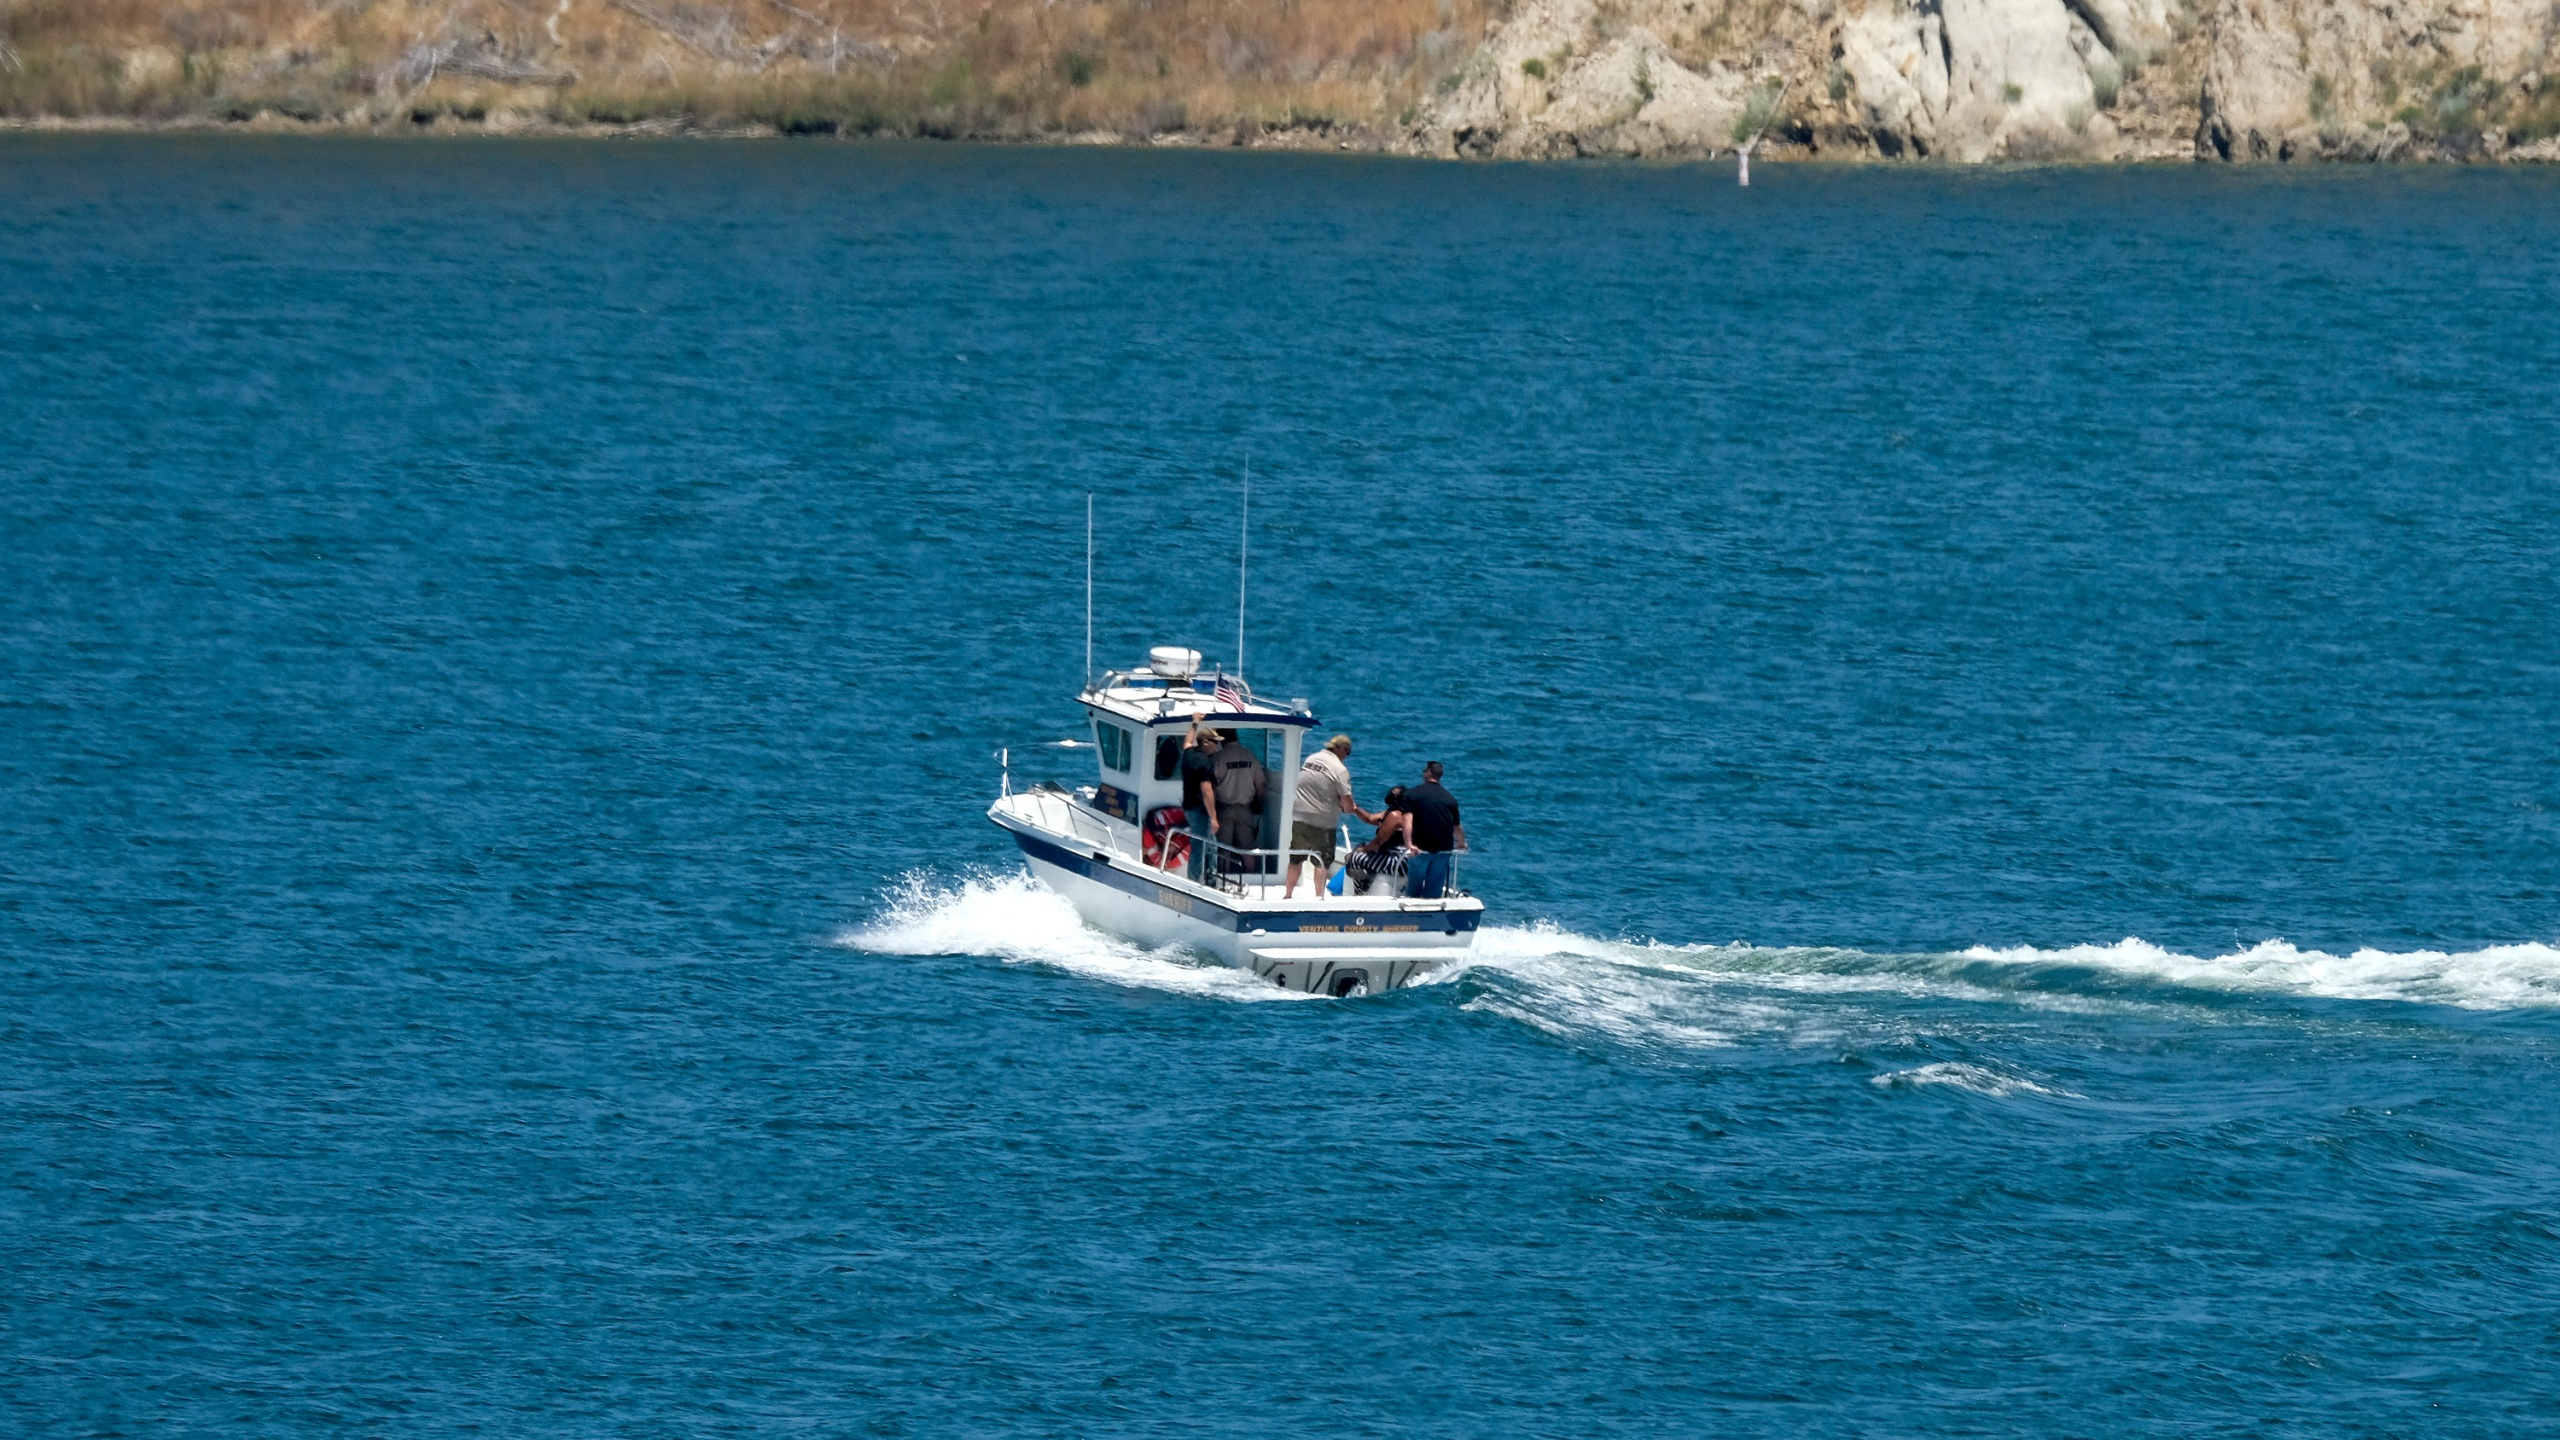 The boat of Ventura County Sheriff's Office with Naya Rivera's father, George Rivera and mother Yolanda onboard is seen after Naya Rivera's body was found in Lake Piru on July 13, 2020. (AP Photo/Ringo H.W. Chiu)